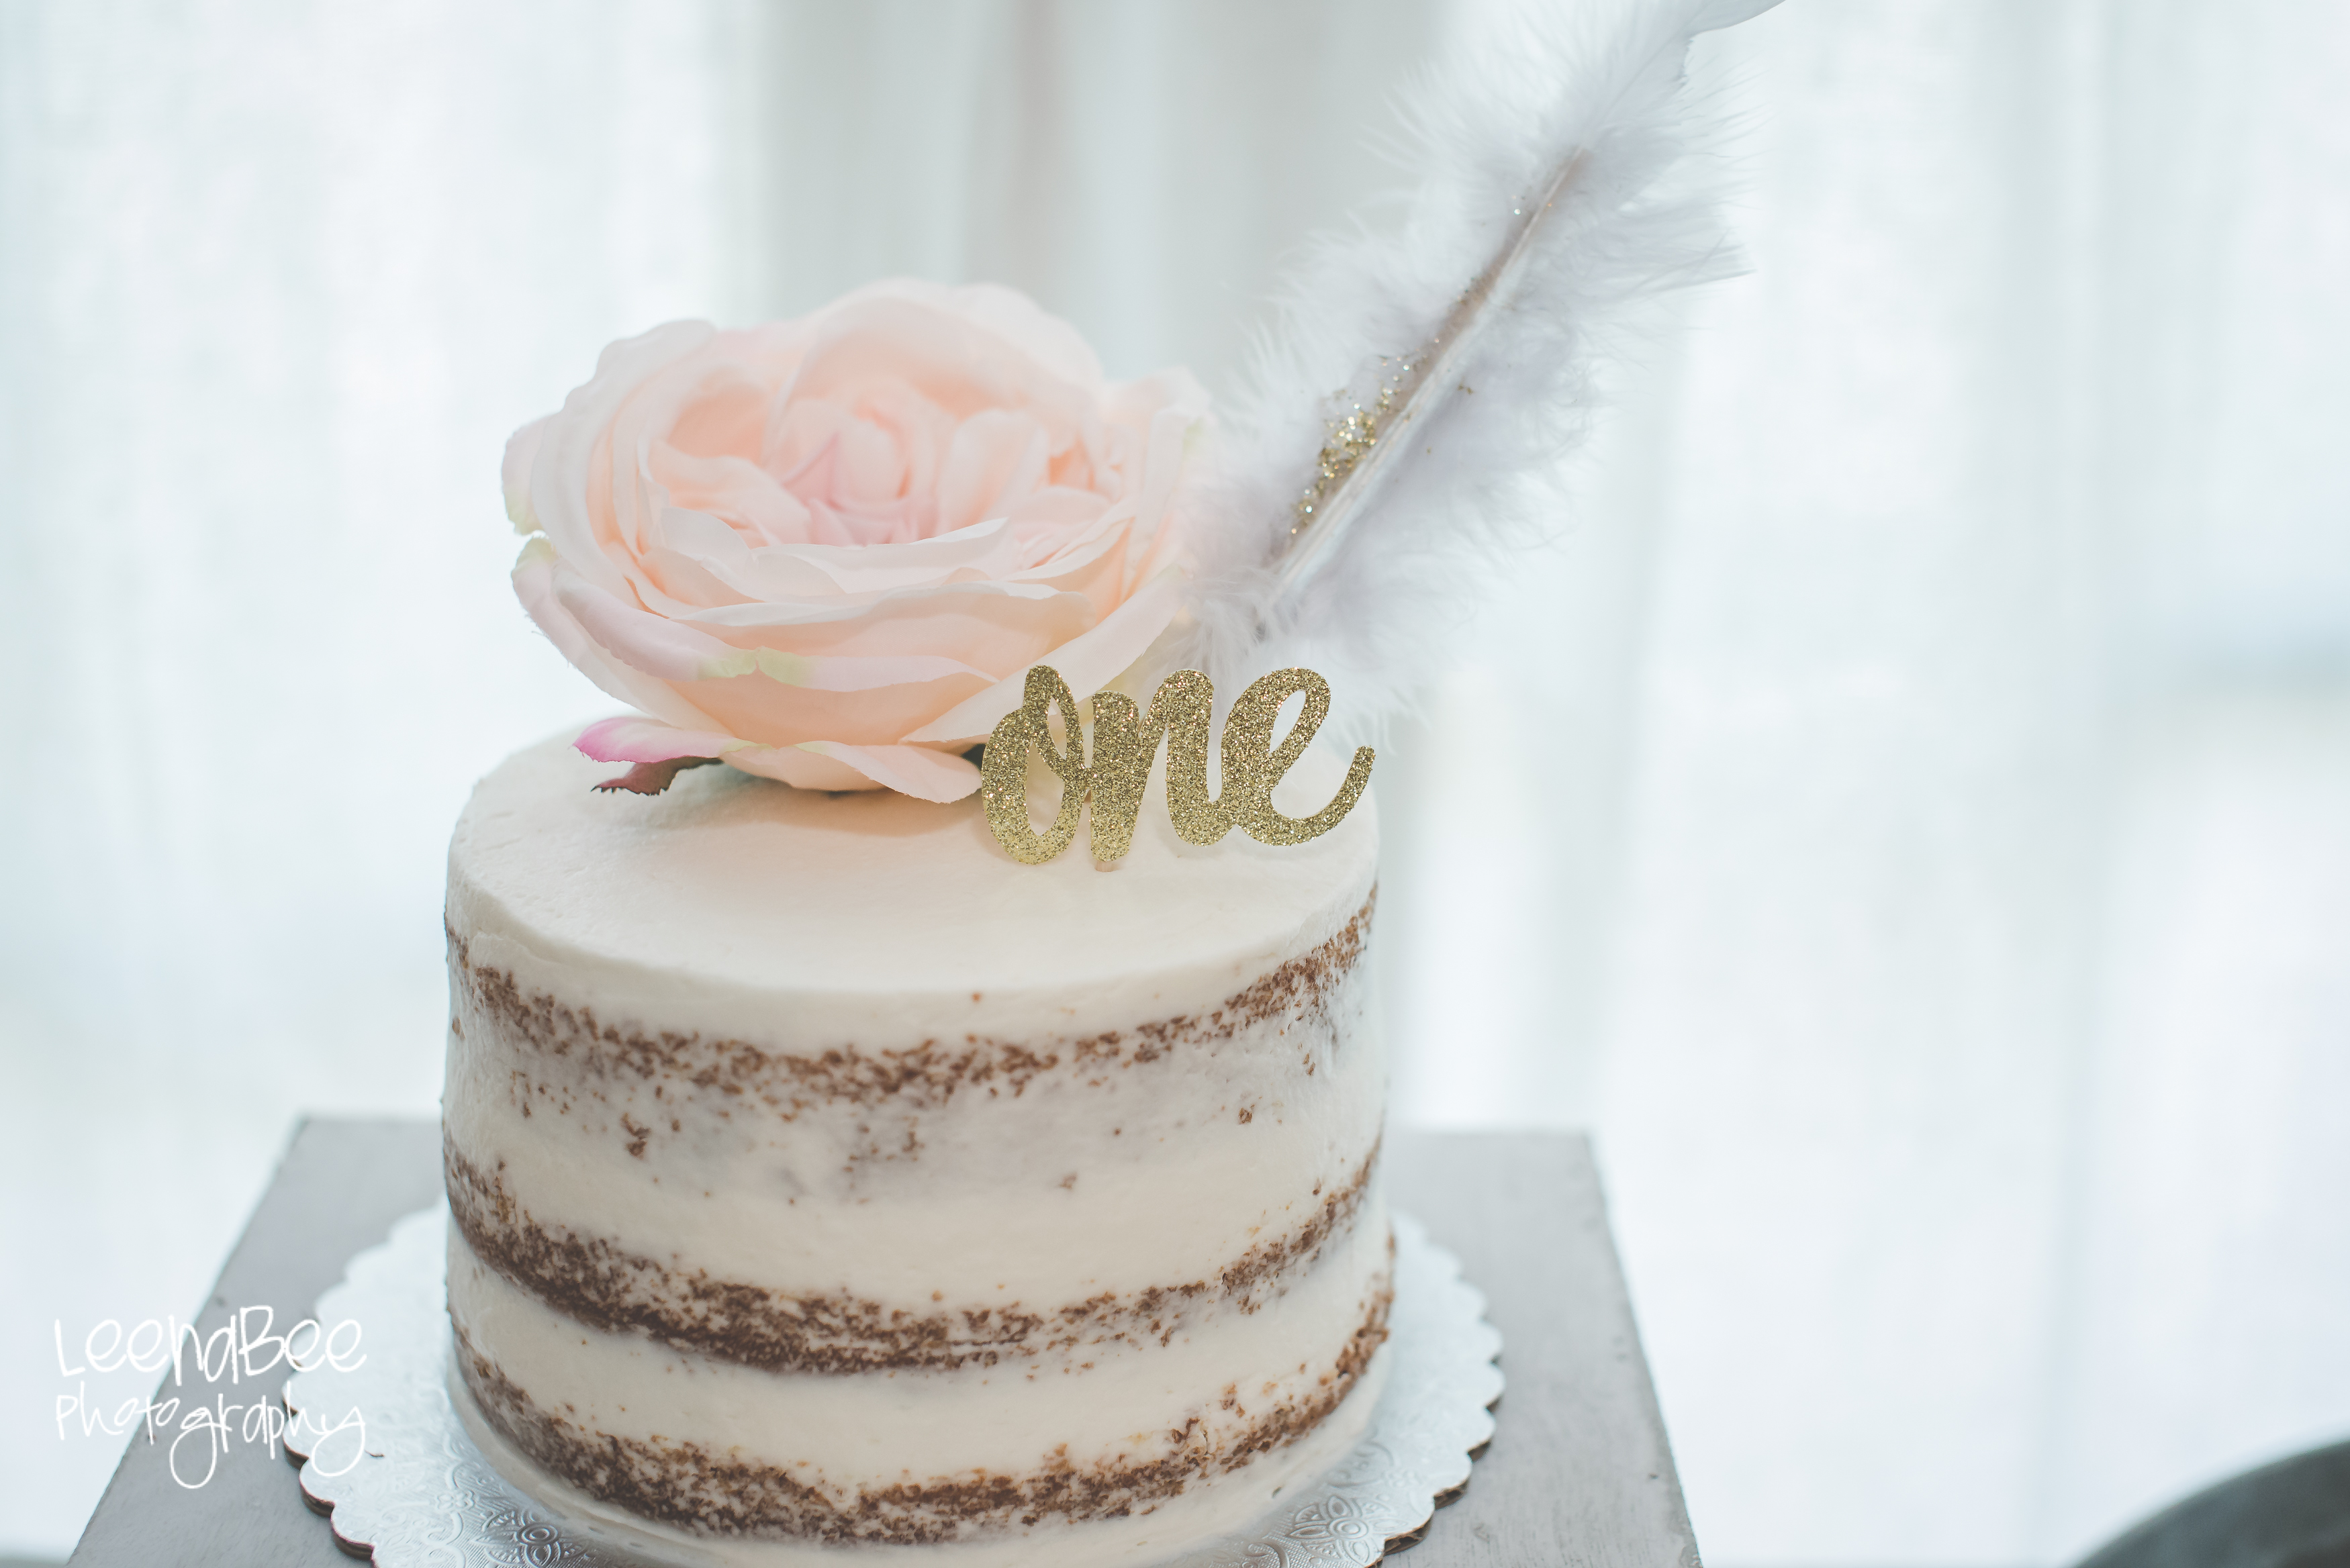 Boho First Birthday Cake Smash Dublin Ohio2 LeenaBee Photography